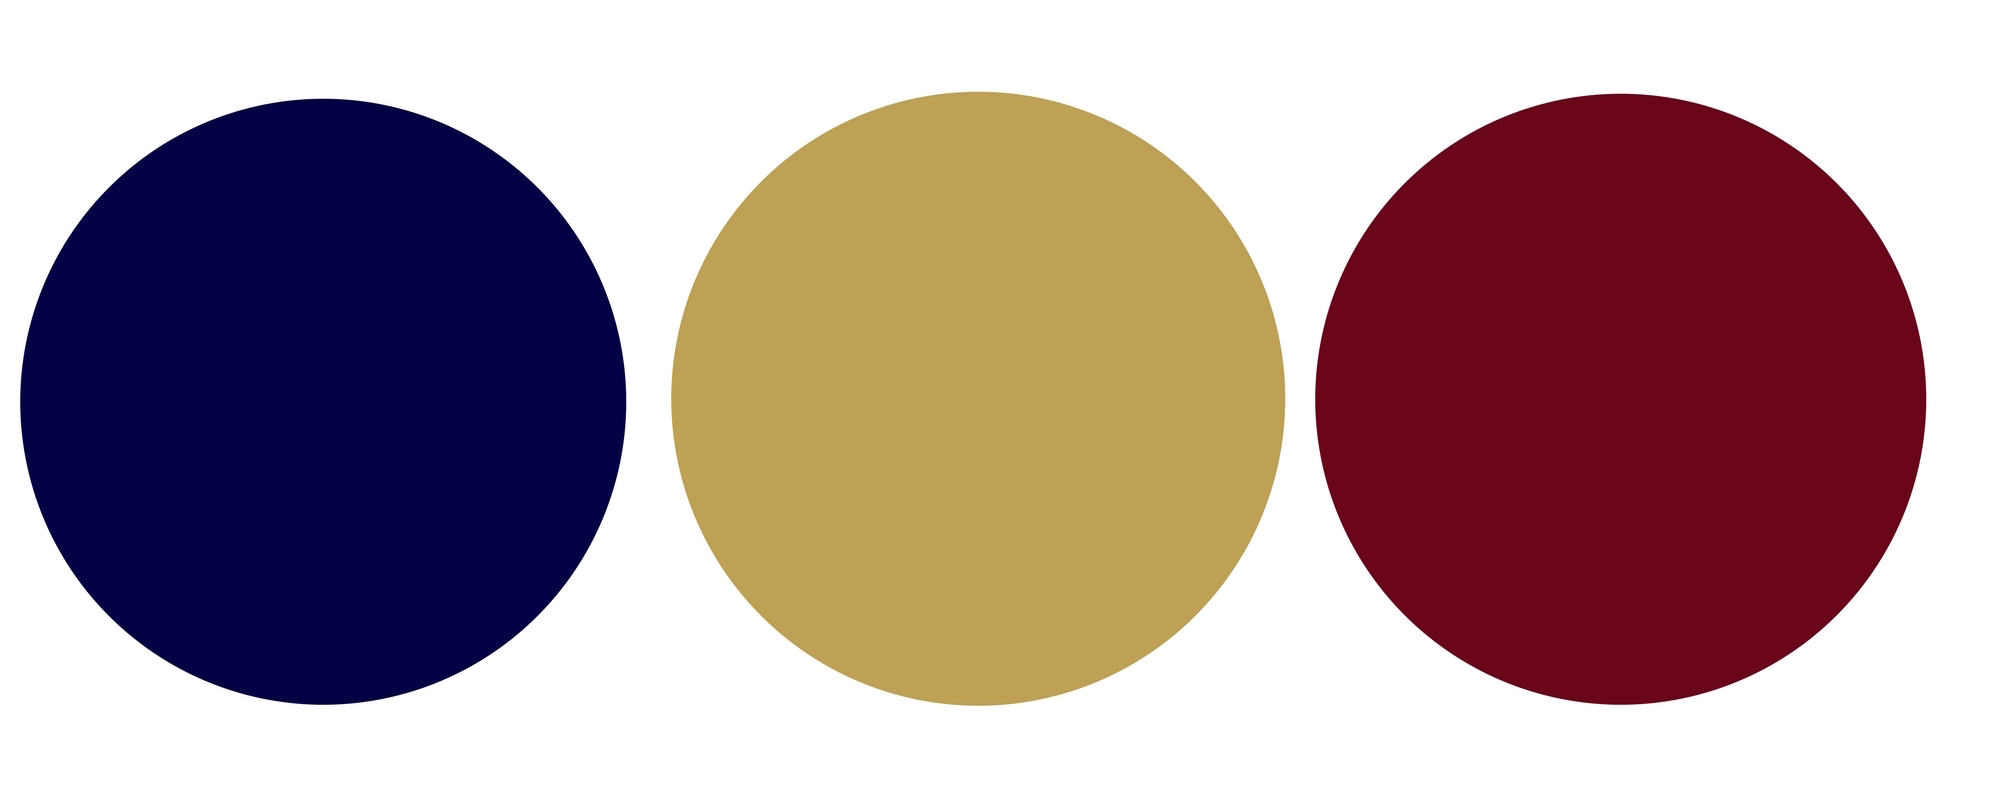 The color Palette incorporates both deep and light blues, gold and rich reds.